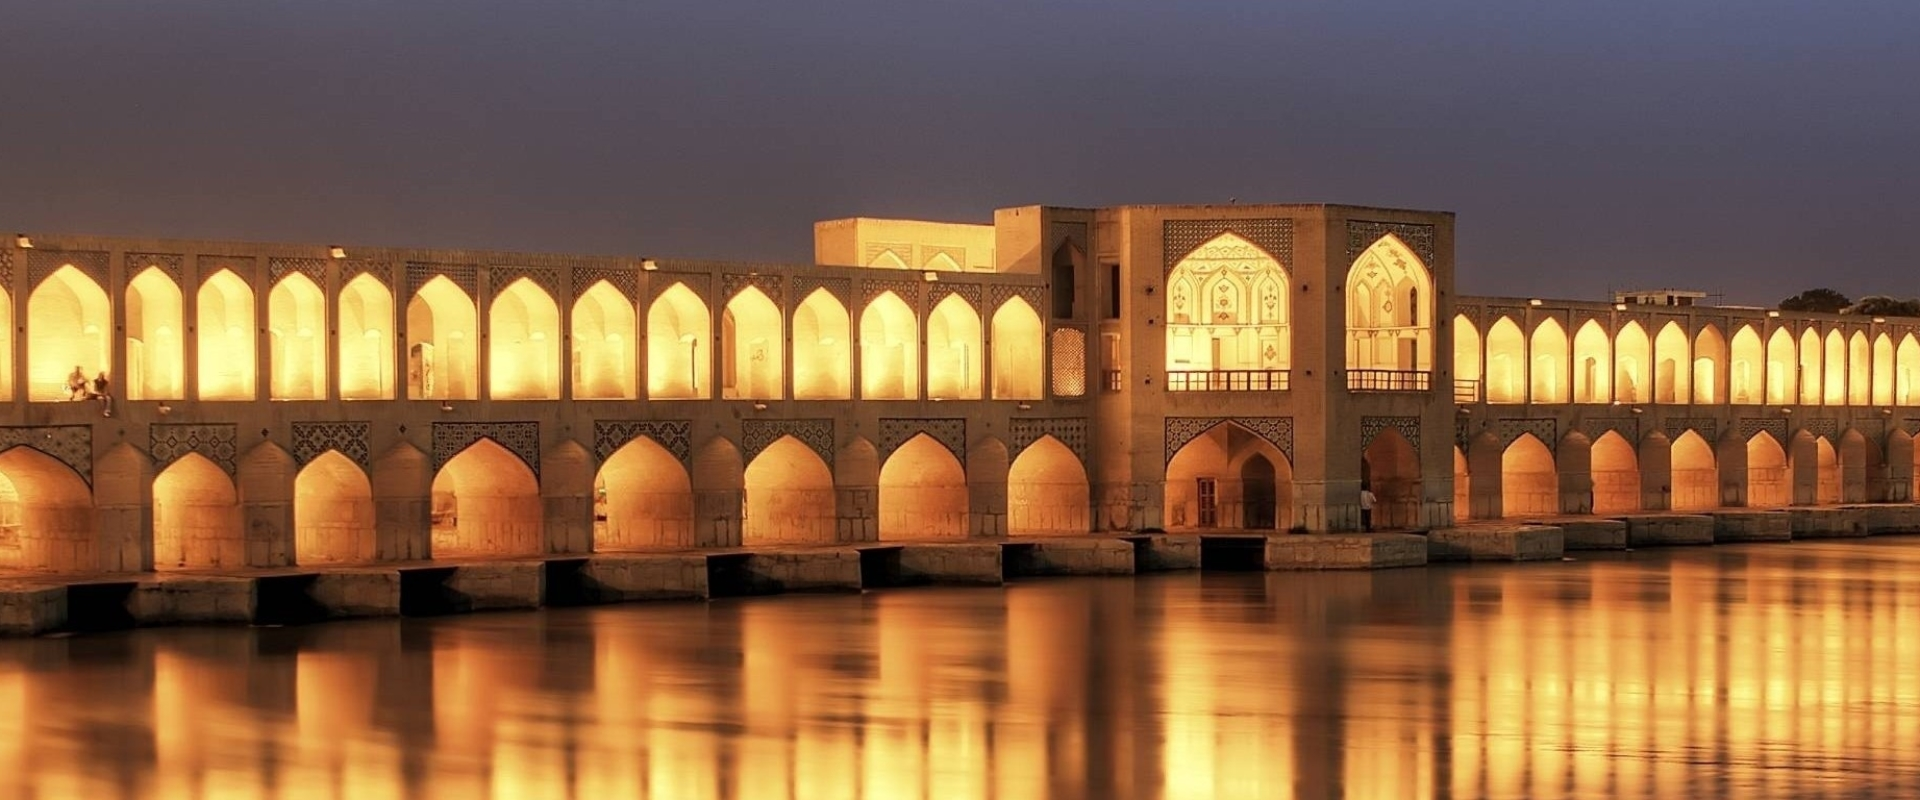 khaju_bridge_at_dusk_isfahan_iran-wallpaper-2560×768